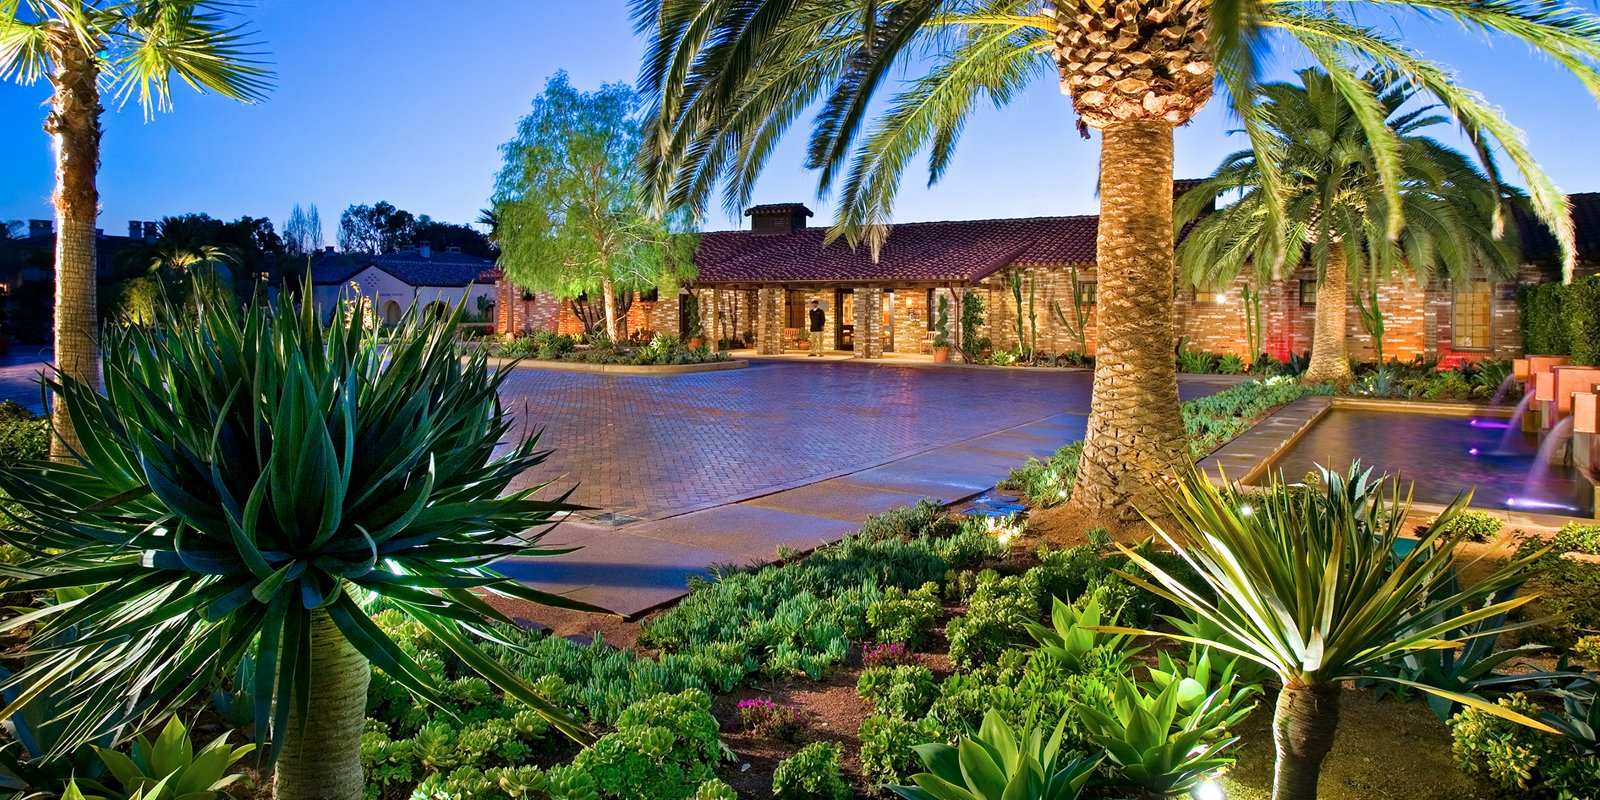 estancia la jolla hotel & spa - priority wine pass